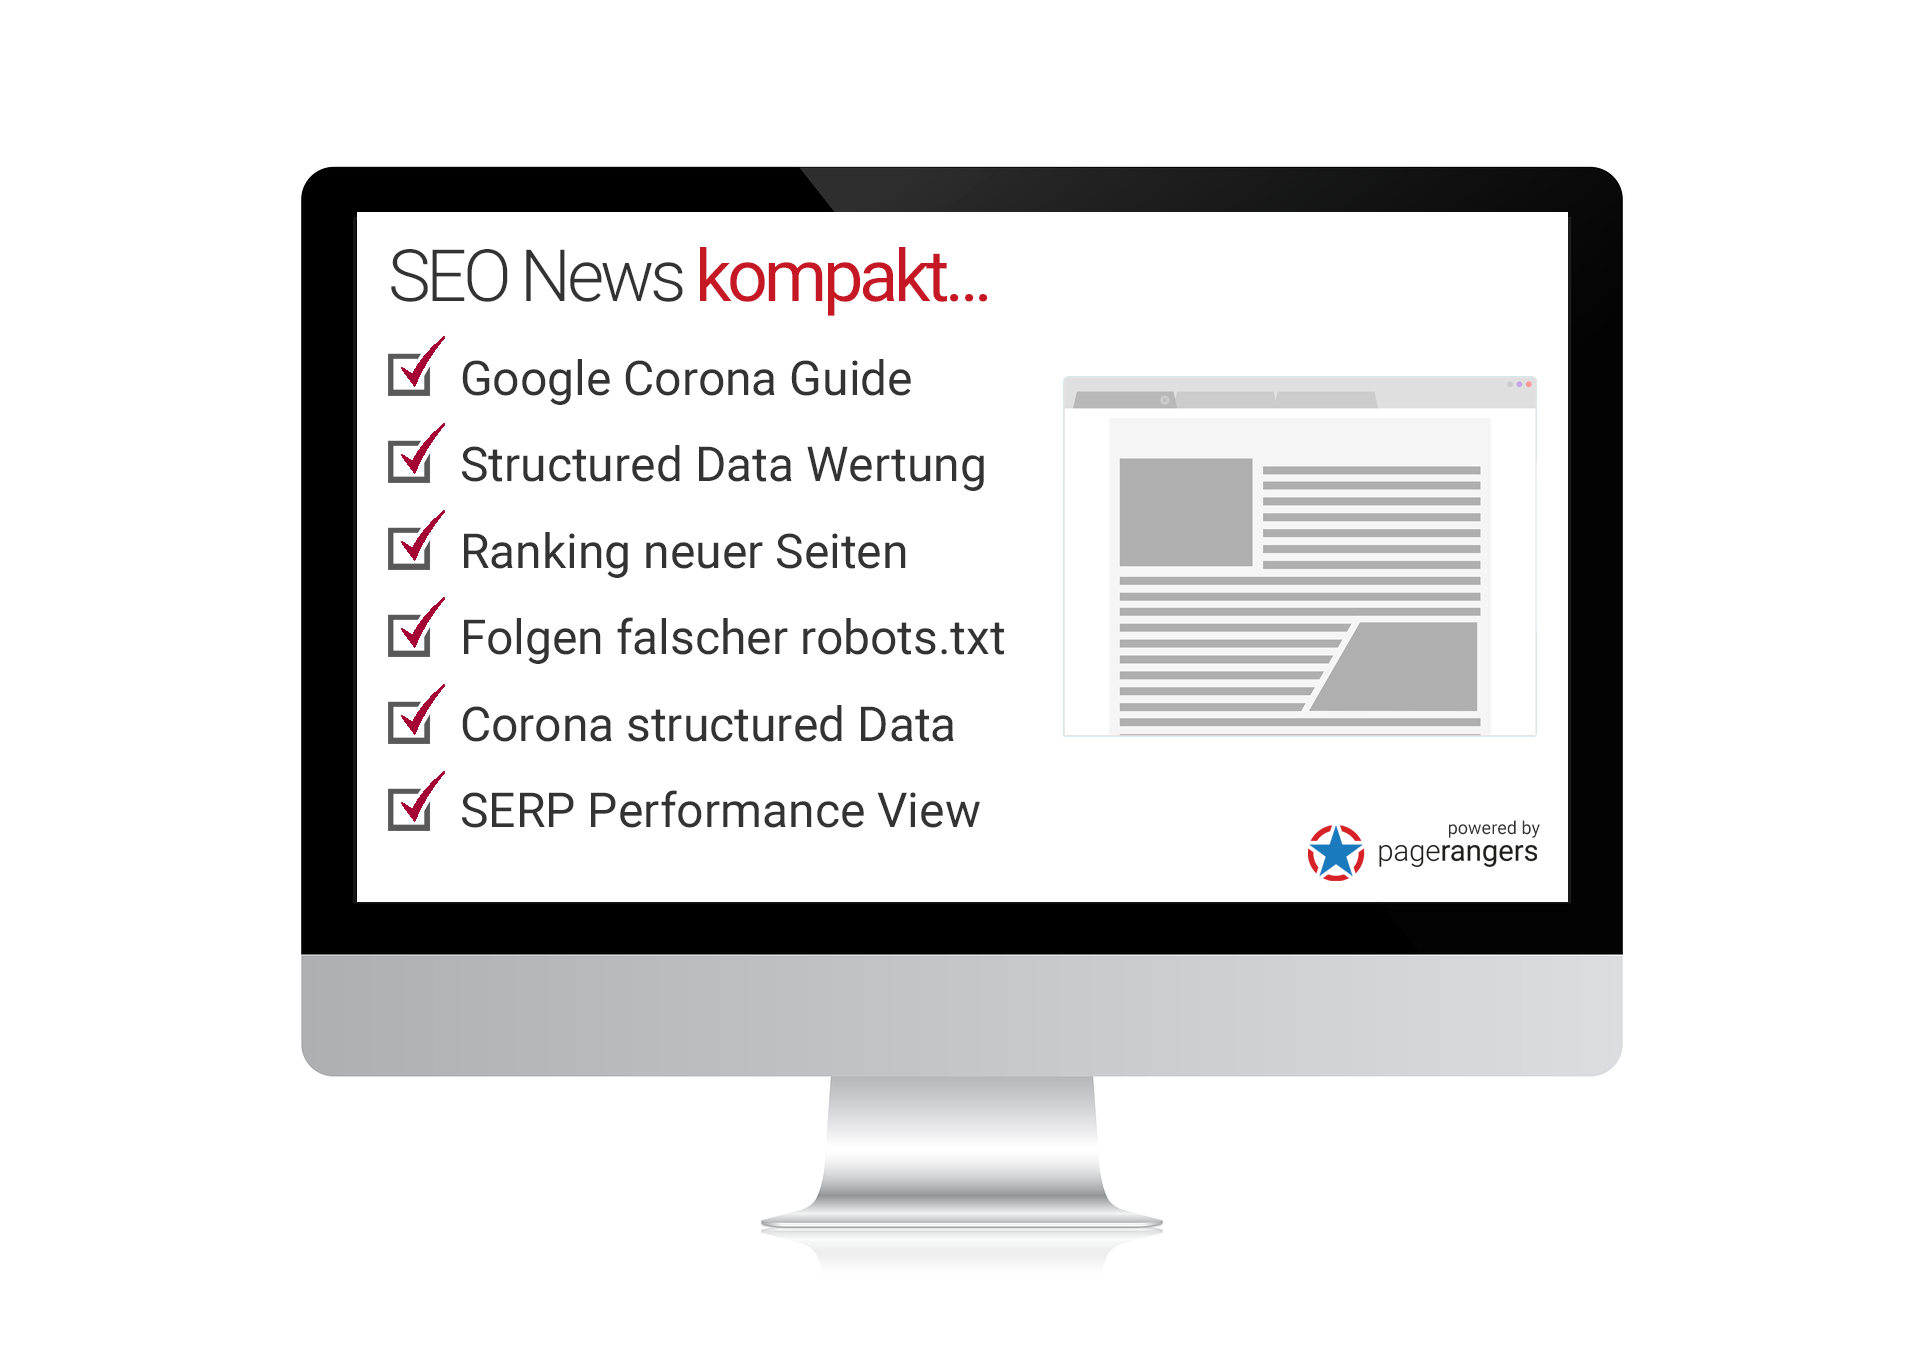 Google Corona Guide, Structured Data, Ranking neuer Seiten, Folgen falscher robots.txt, Corona structured Data, SERP Performance View